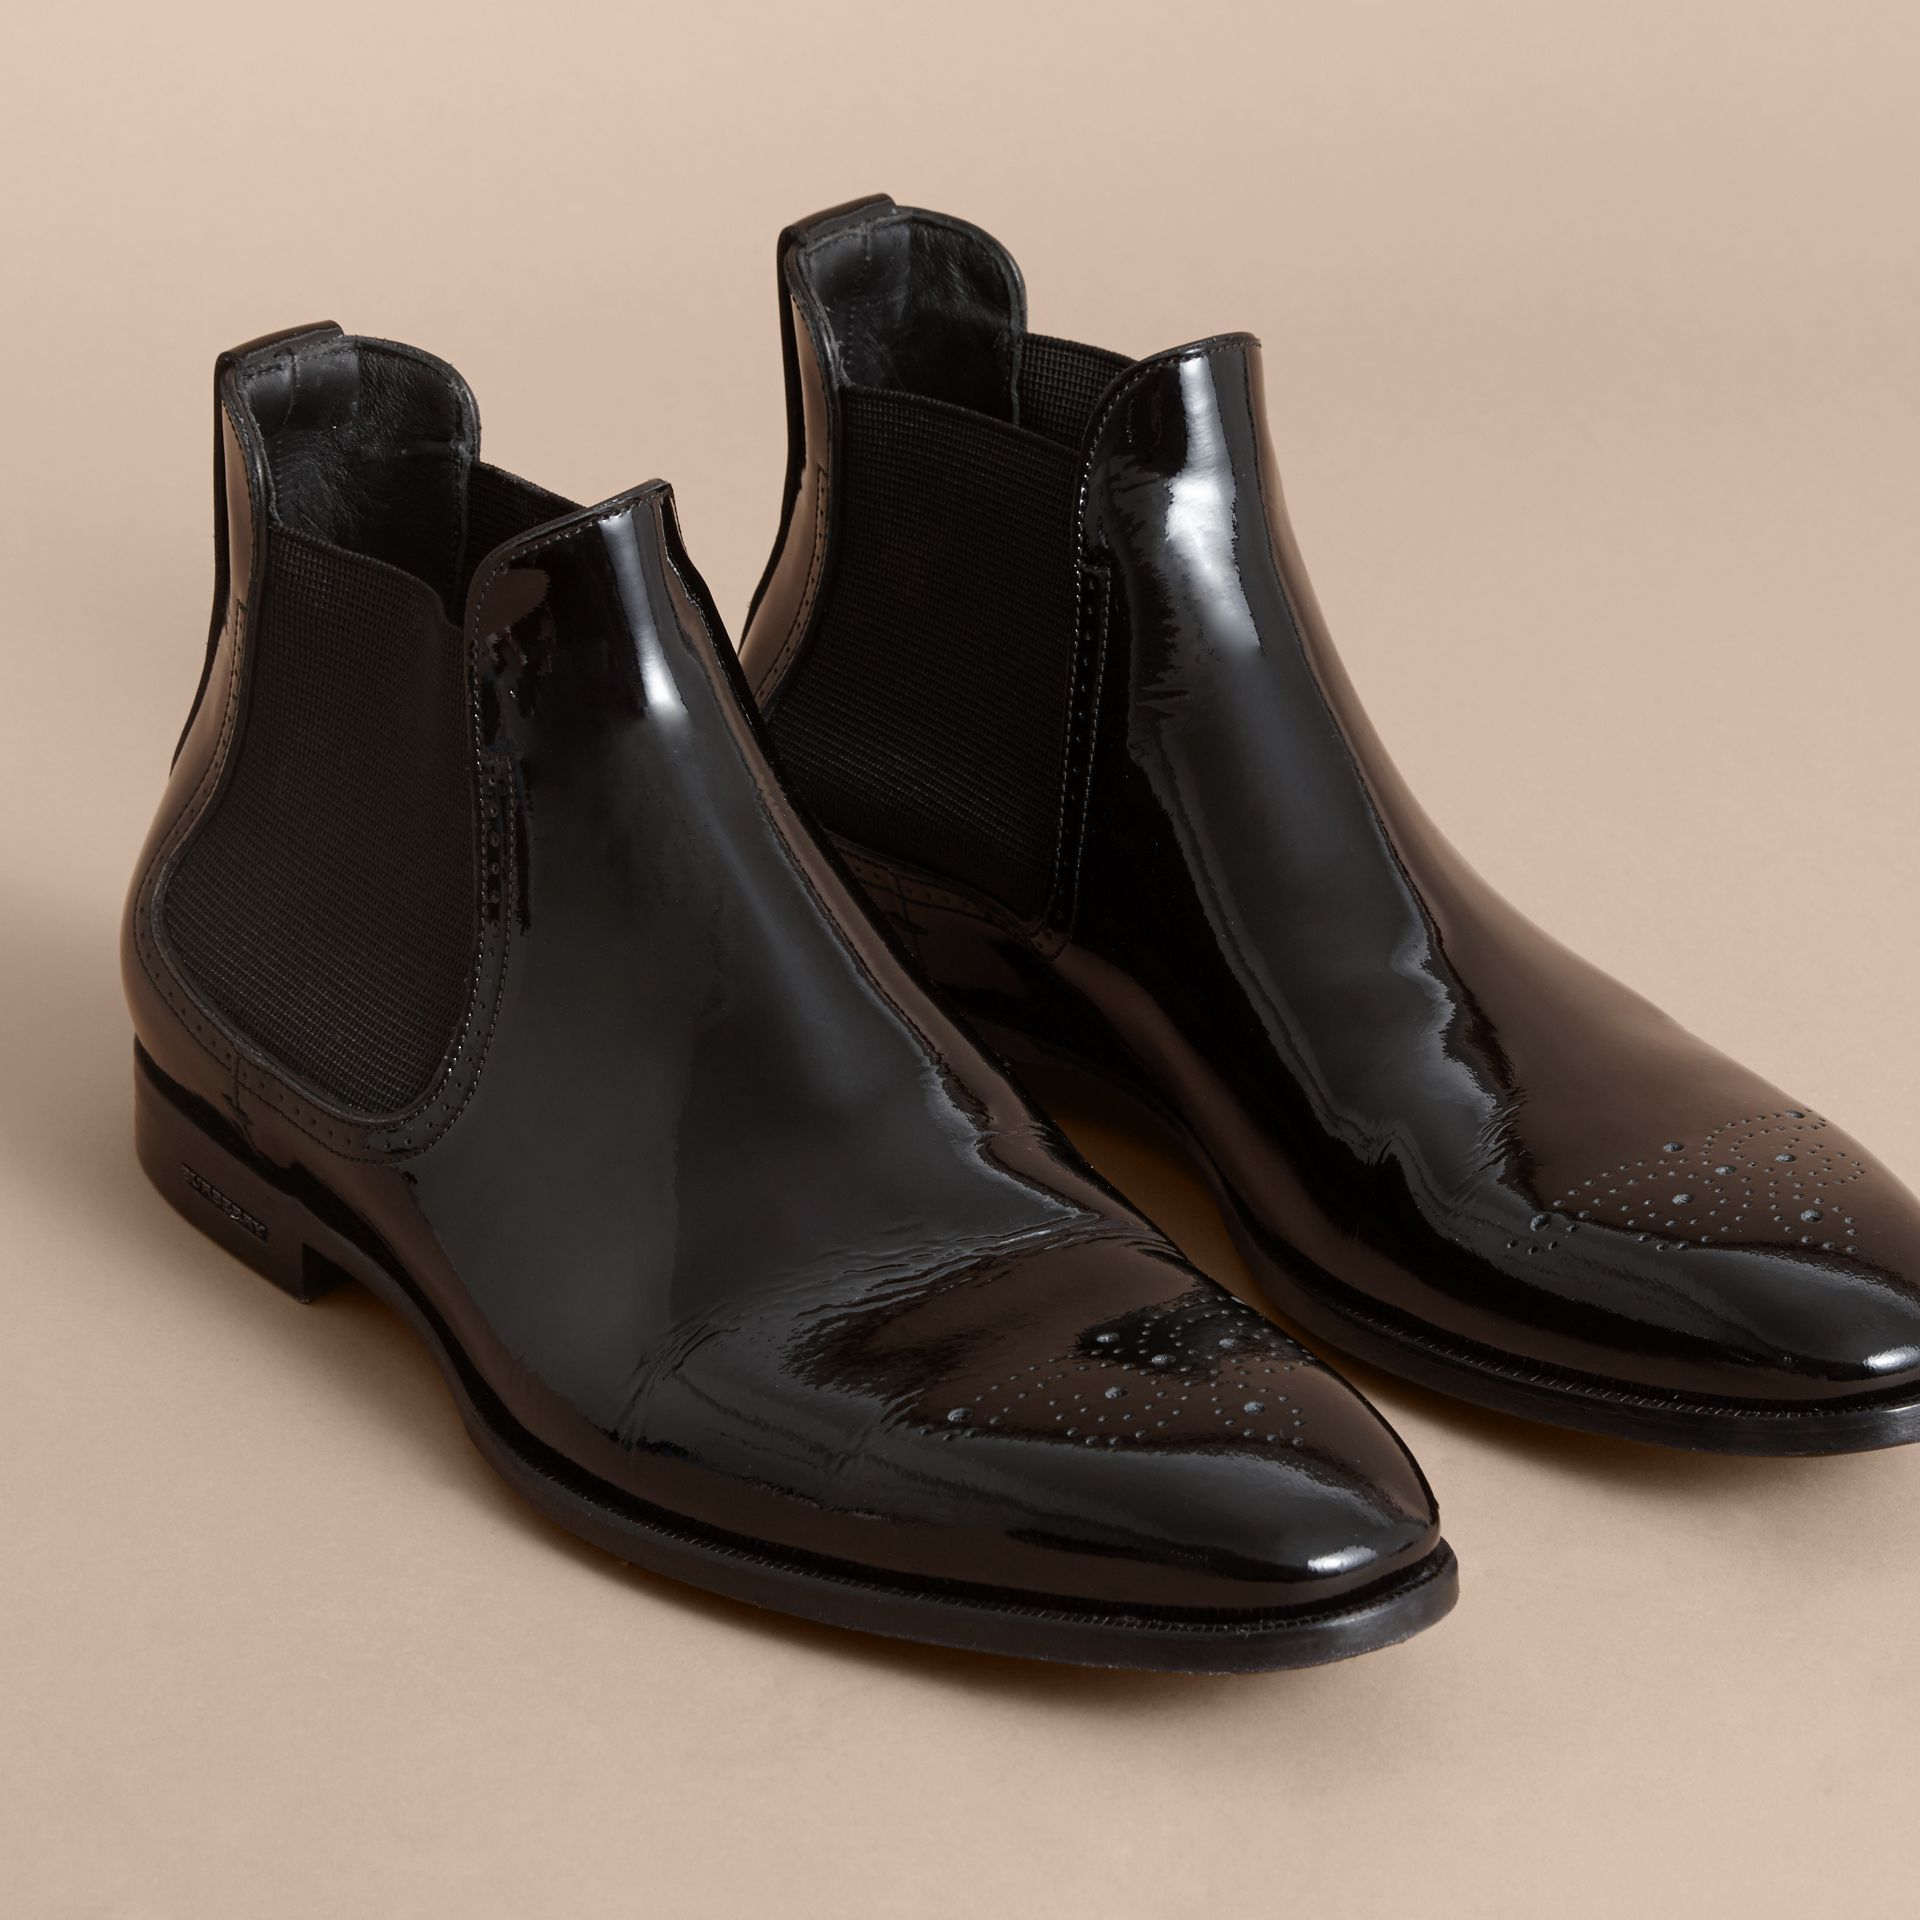 Polished Leather Chelsea Boots in Black - Men | Burberry - gallery image 4